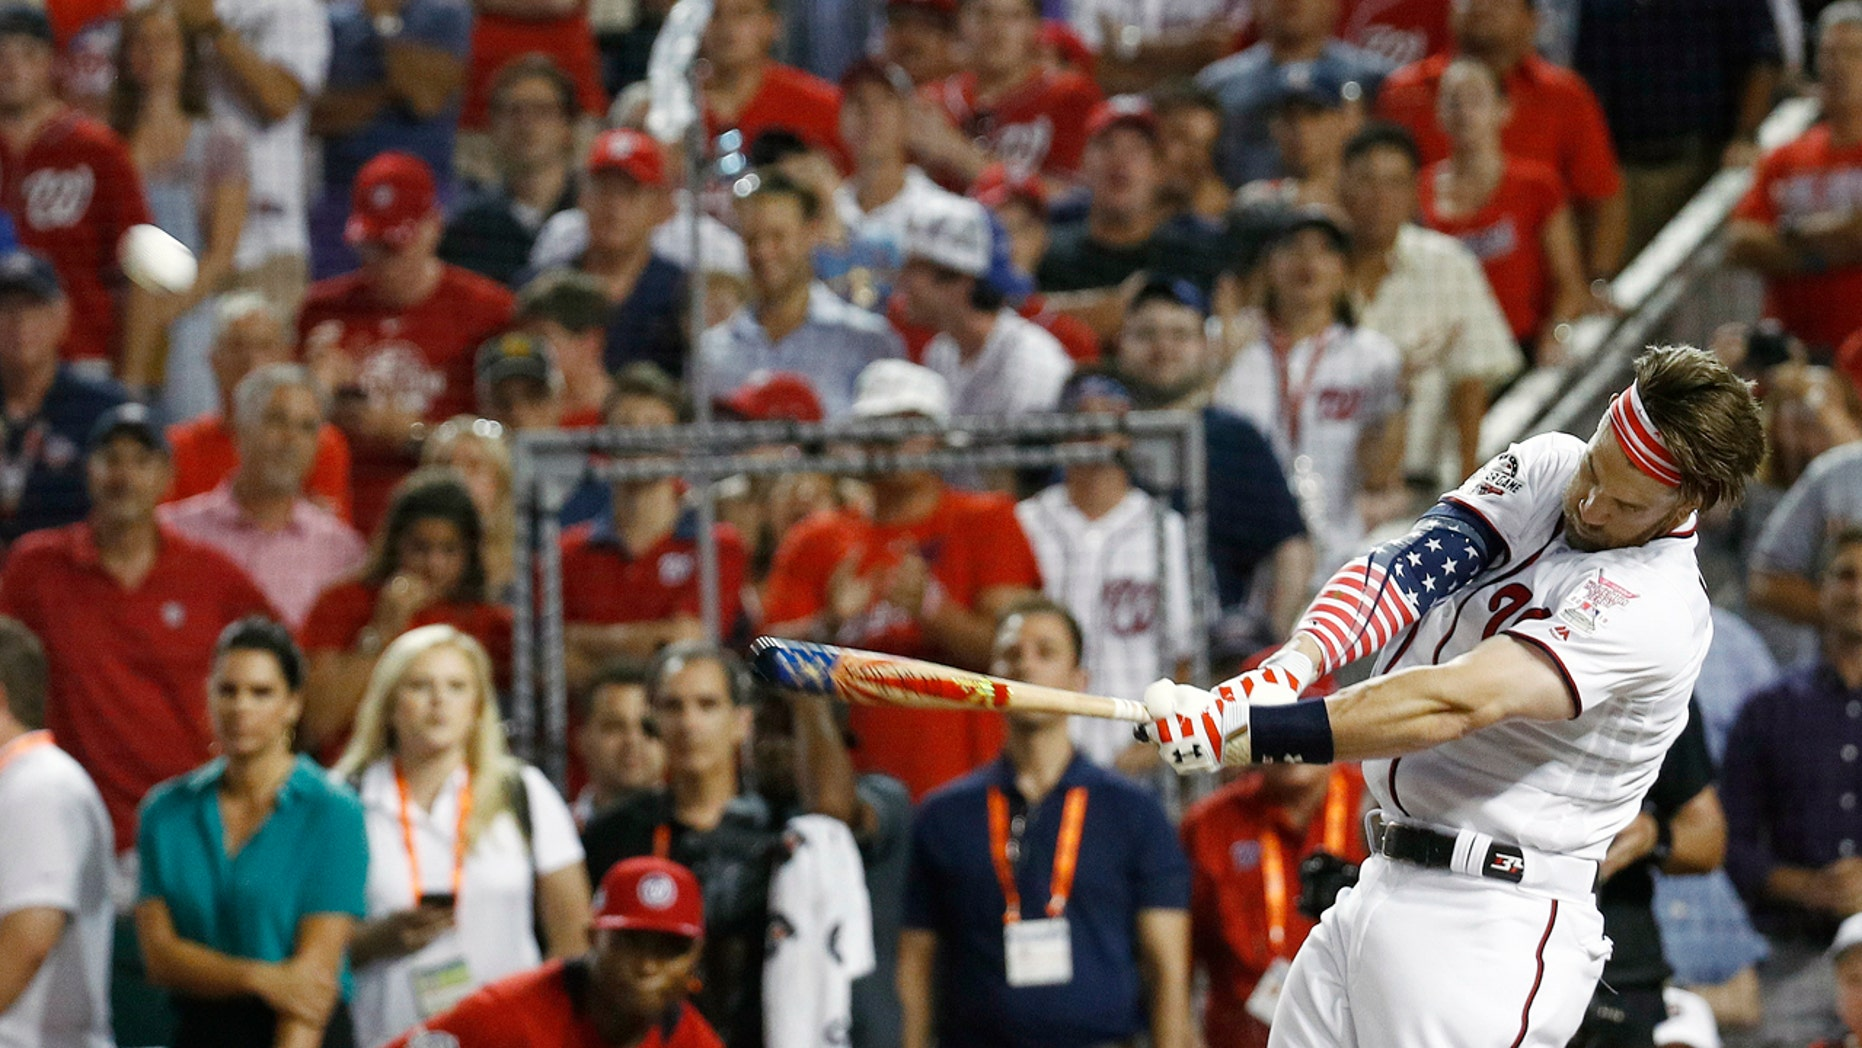 Bryce Harper hit a total of 45 home runs in winning Monday night's Home Run Derby at Nationals Park.